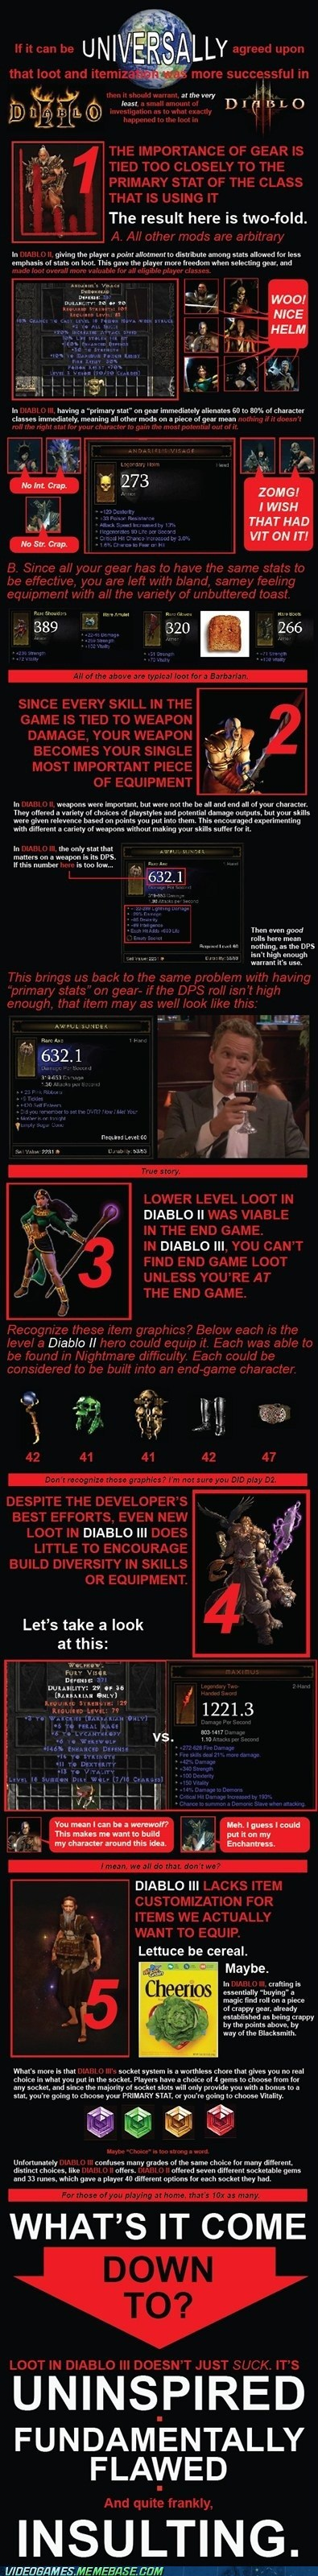 blizzard diablo III infographic PC Sad - 6592644864